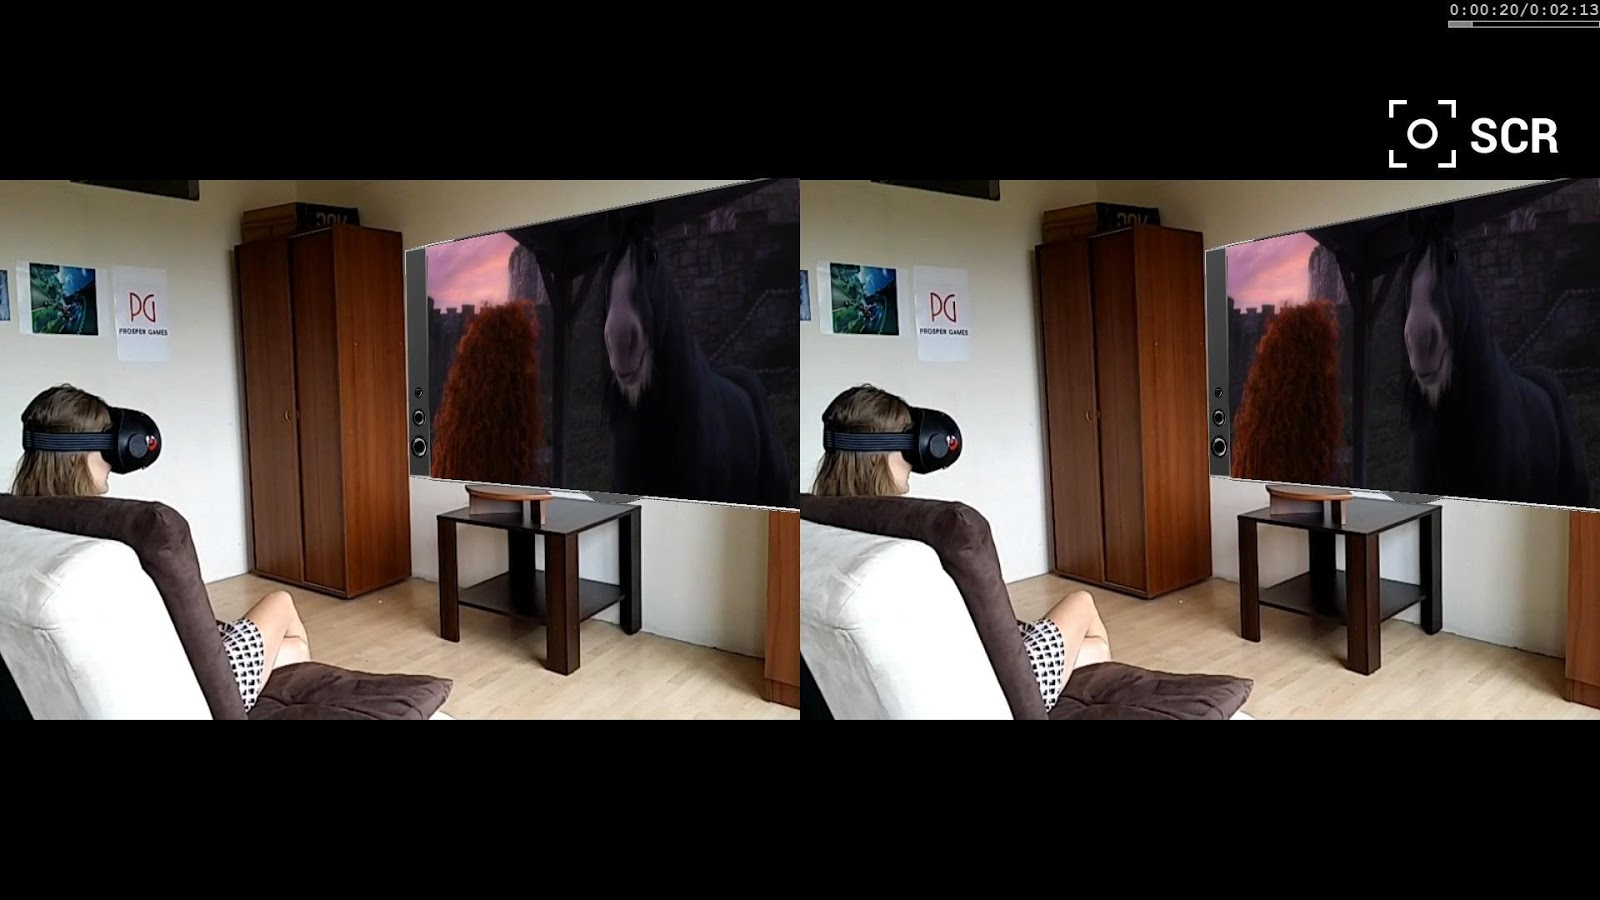 VR AR Cmoar TV Pro - screenshot